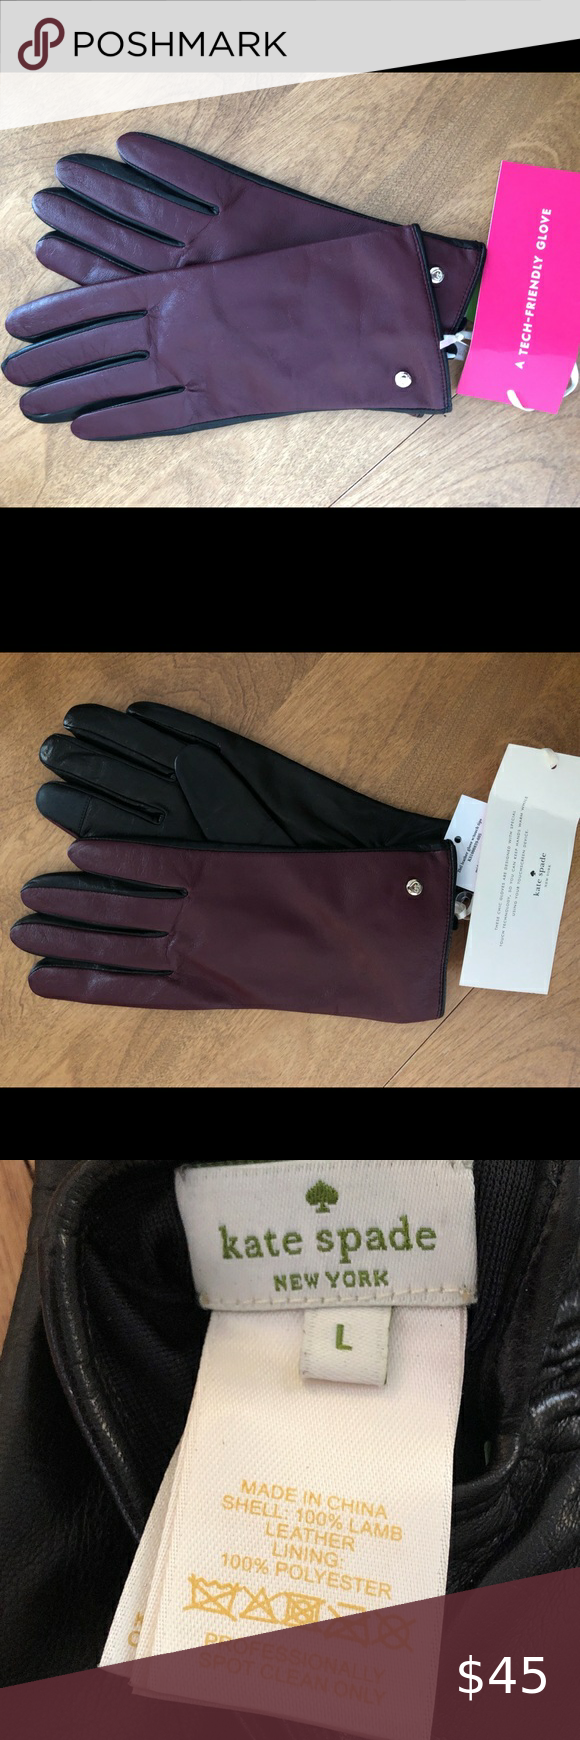 Kate Spade Leather Tech Tip Gloves Nwt In 2020 Kate Spade Leather Leather Gloves